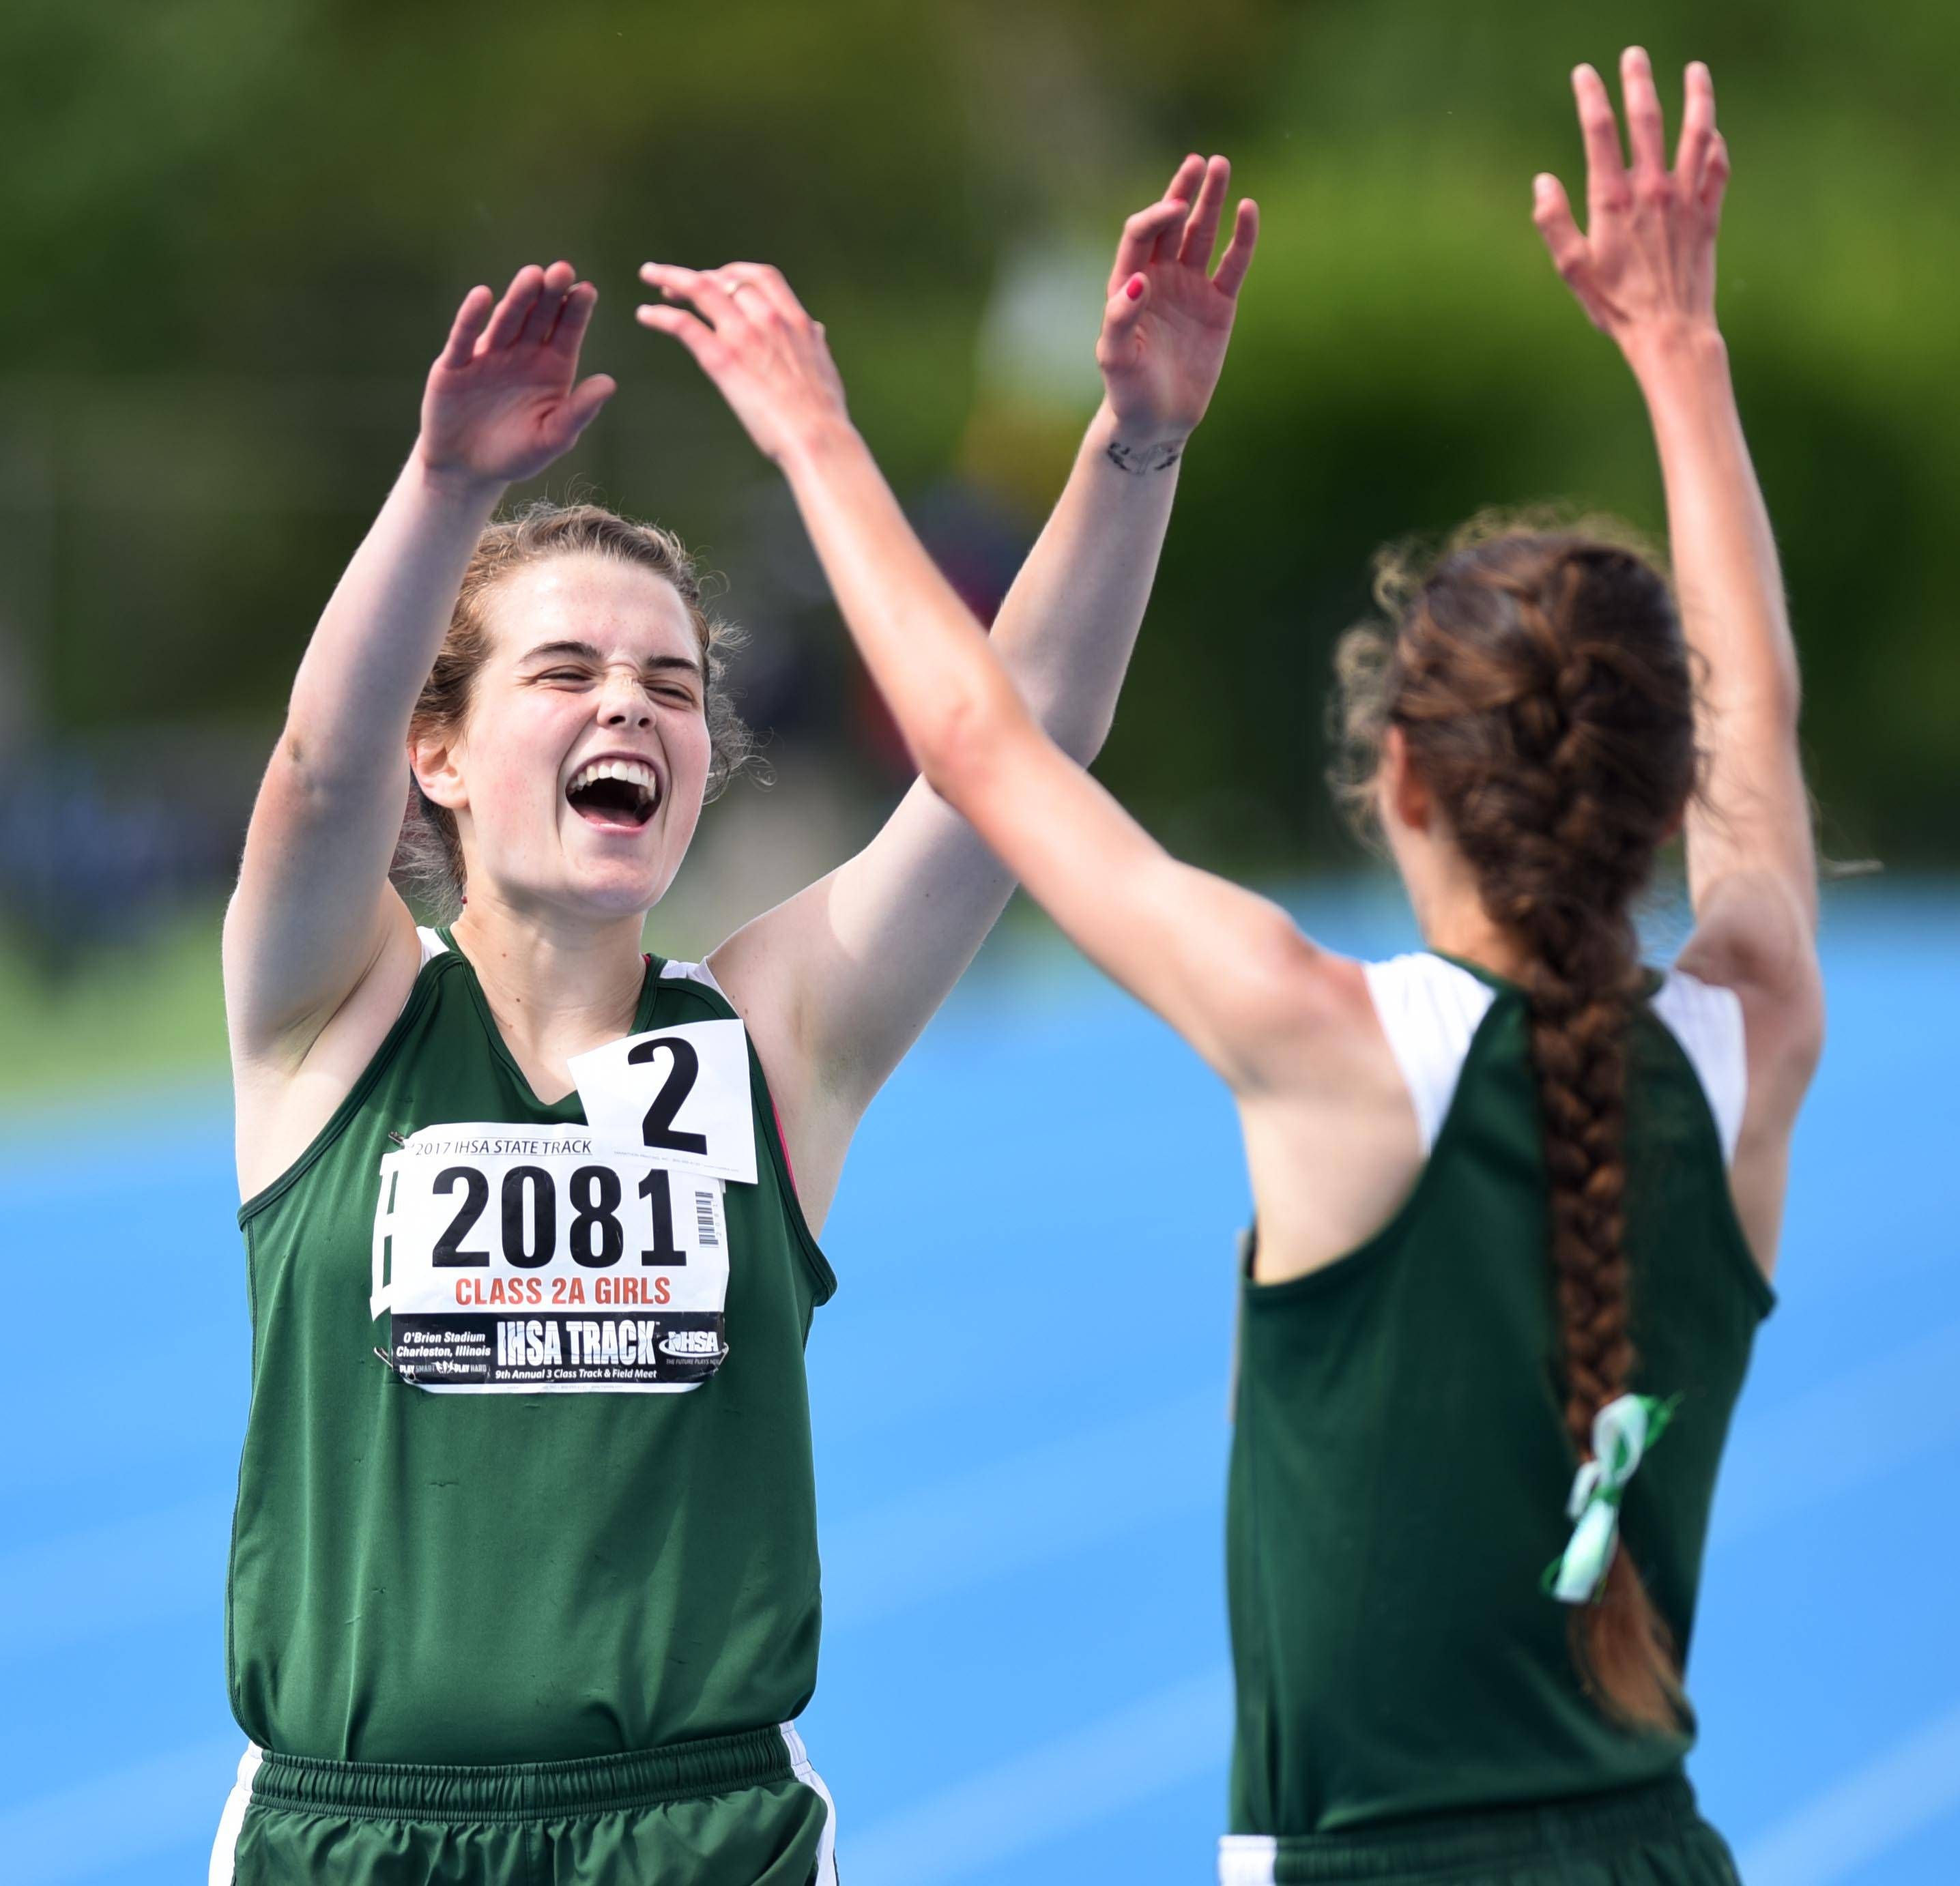 Boylan Catholic's Delaney Appino and Grace McLaughlin celebrate their first and second place finish in the Class 2A 1600-Meter Run at the state girls track and field meet finals on Saturday at Eastern Illinois University in Charleston.